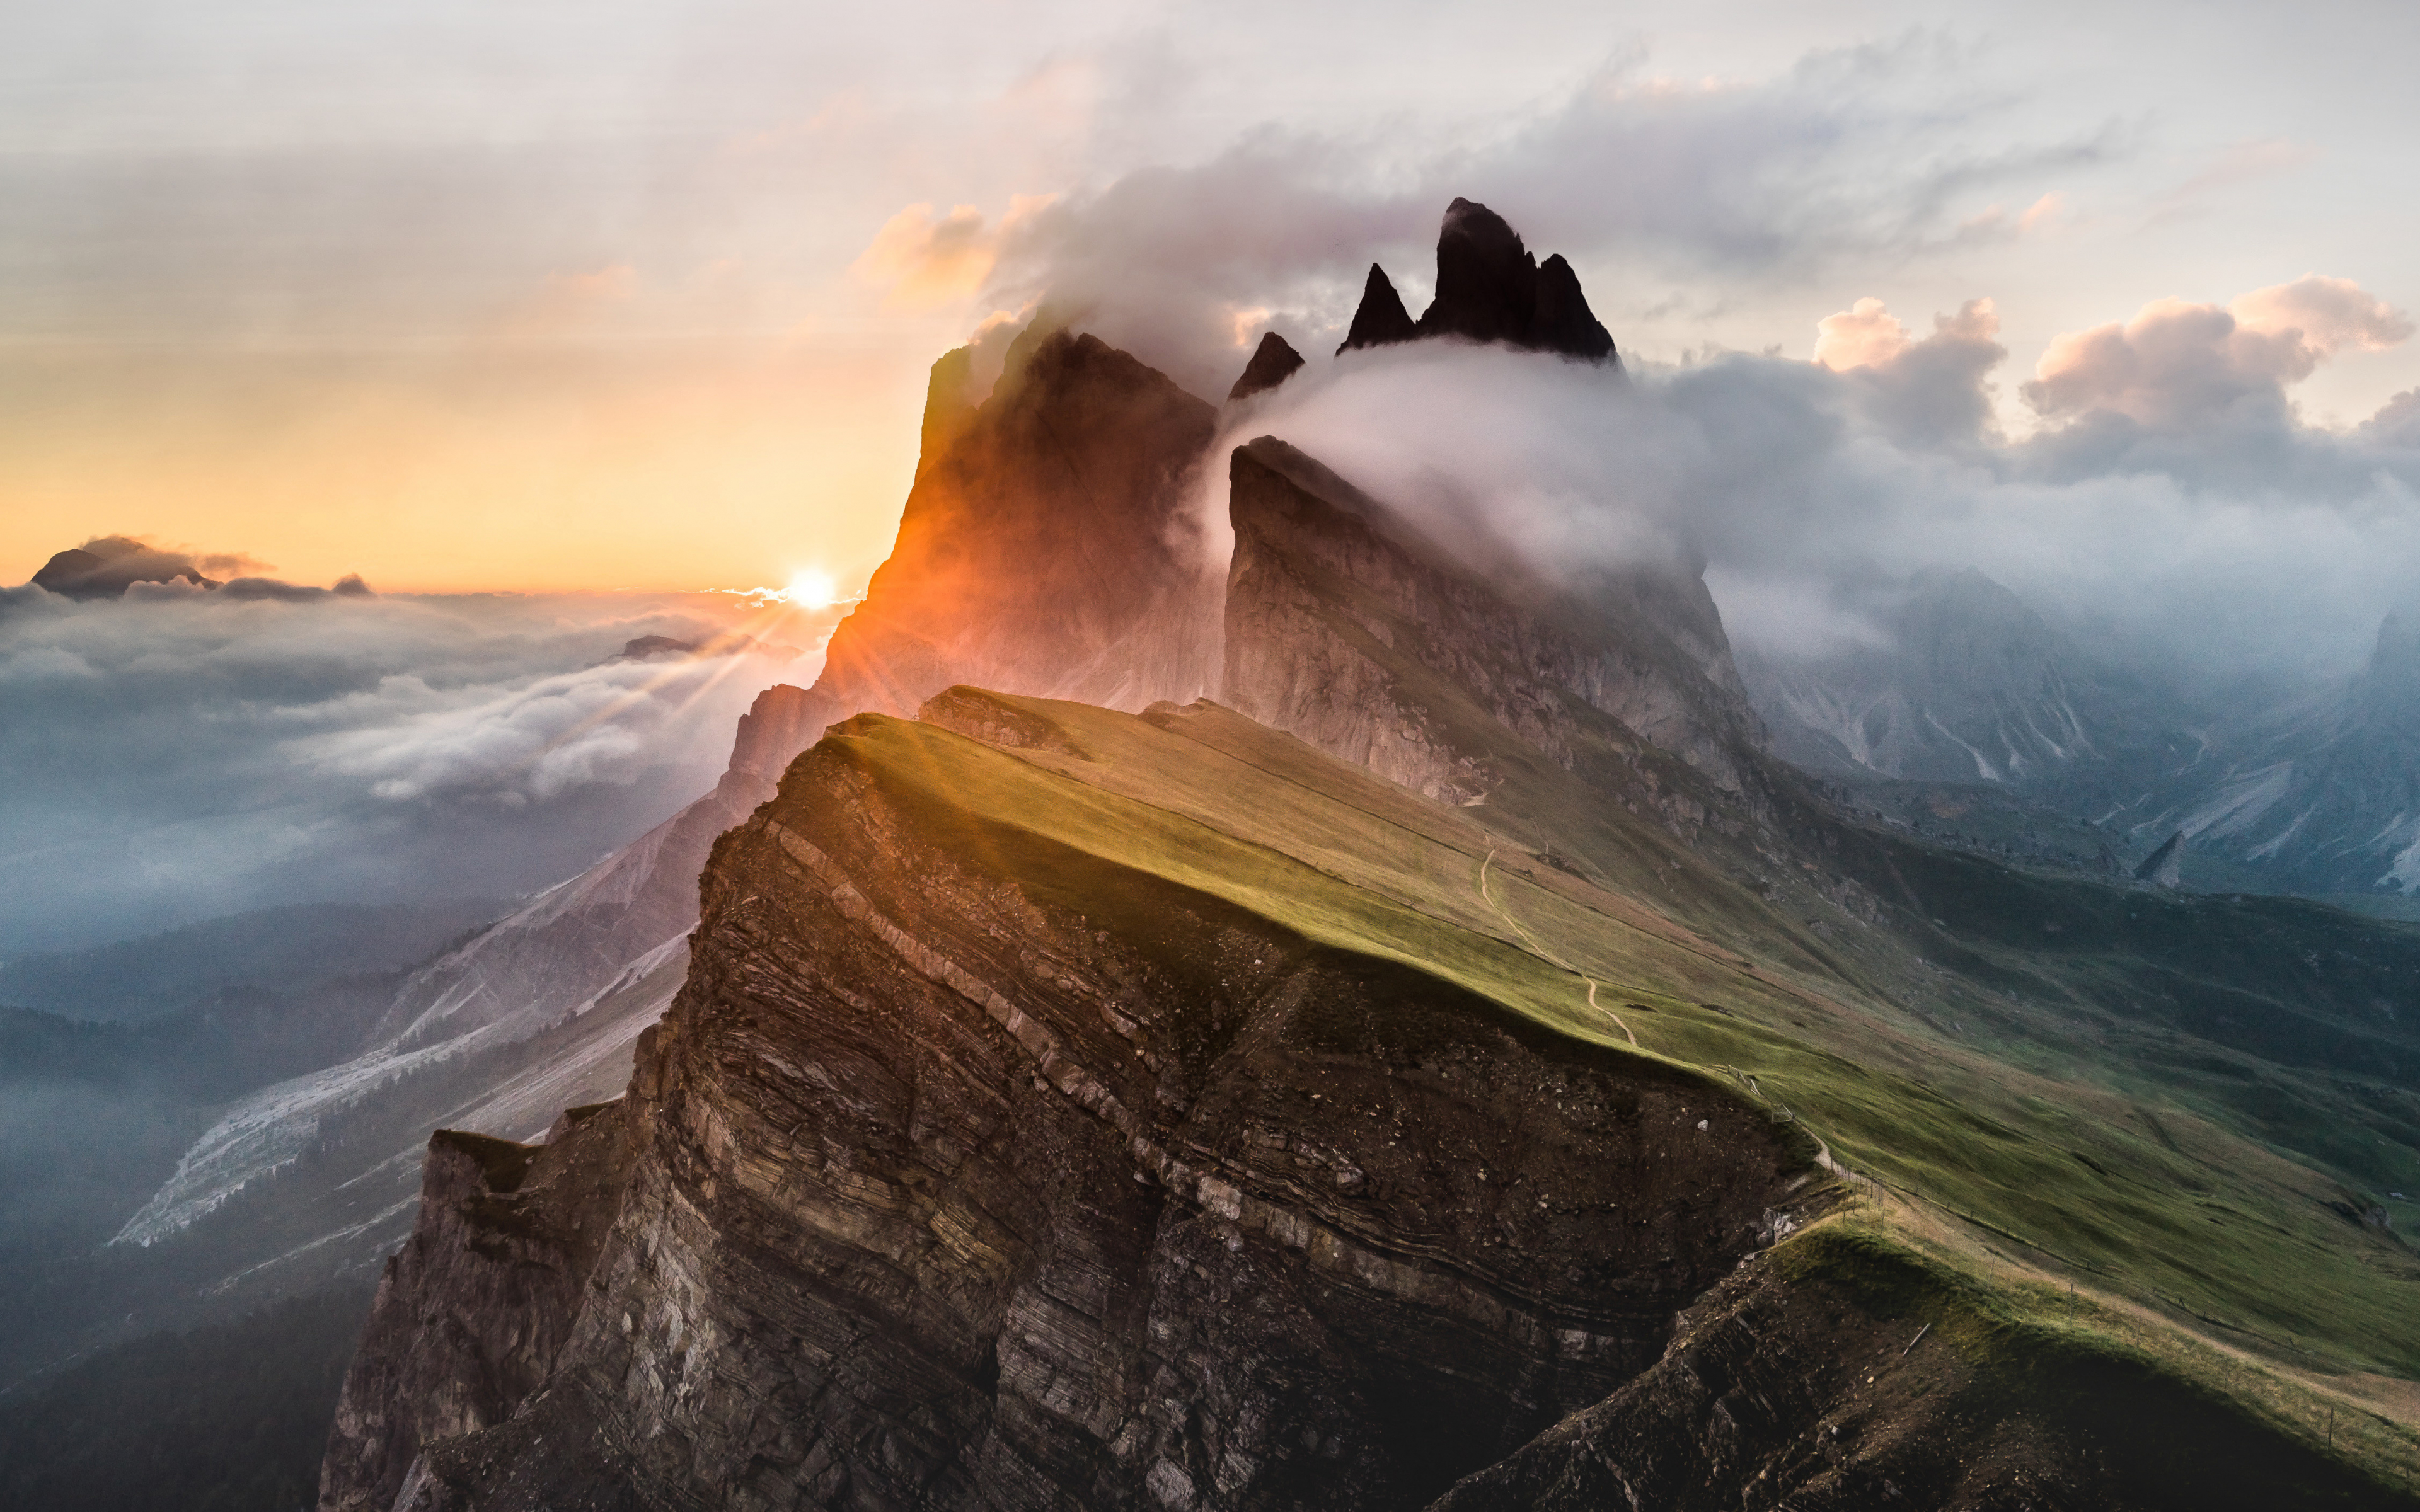 Download 3840x2400 Wallpaper Dolomites Mountains Clouds